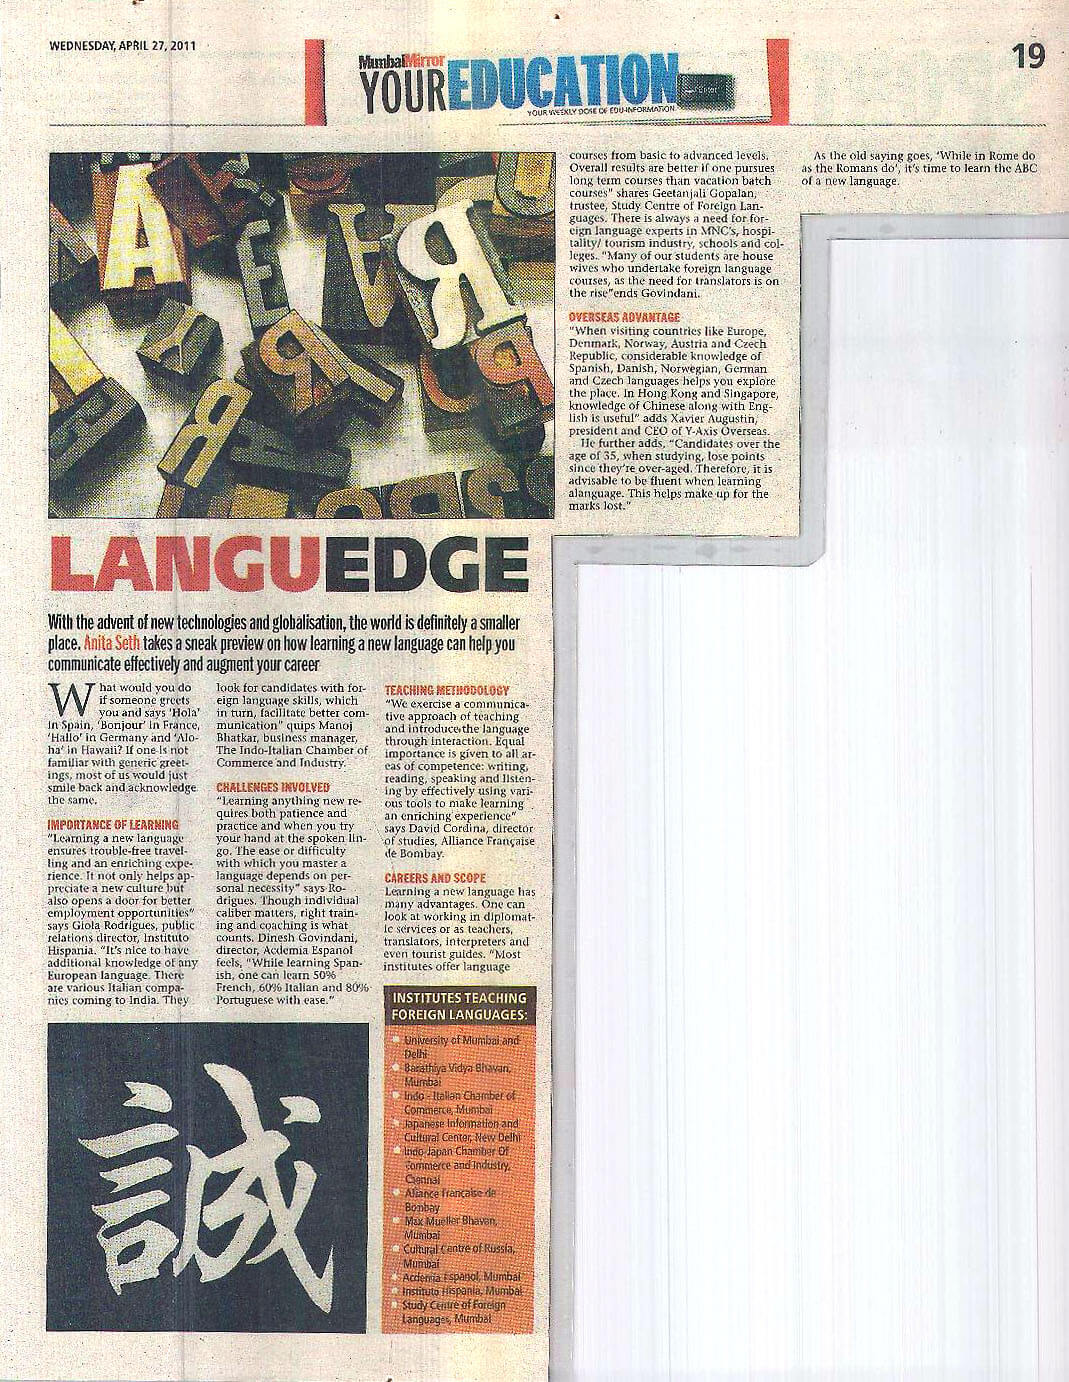 Mumbai Mirror Your Education - Languedge